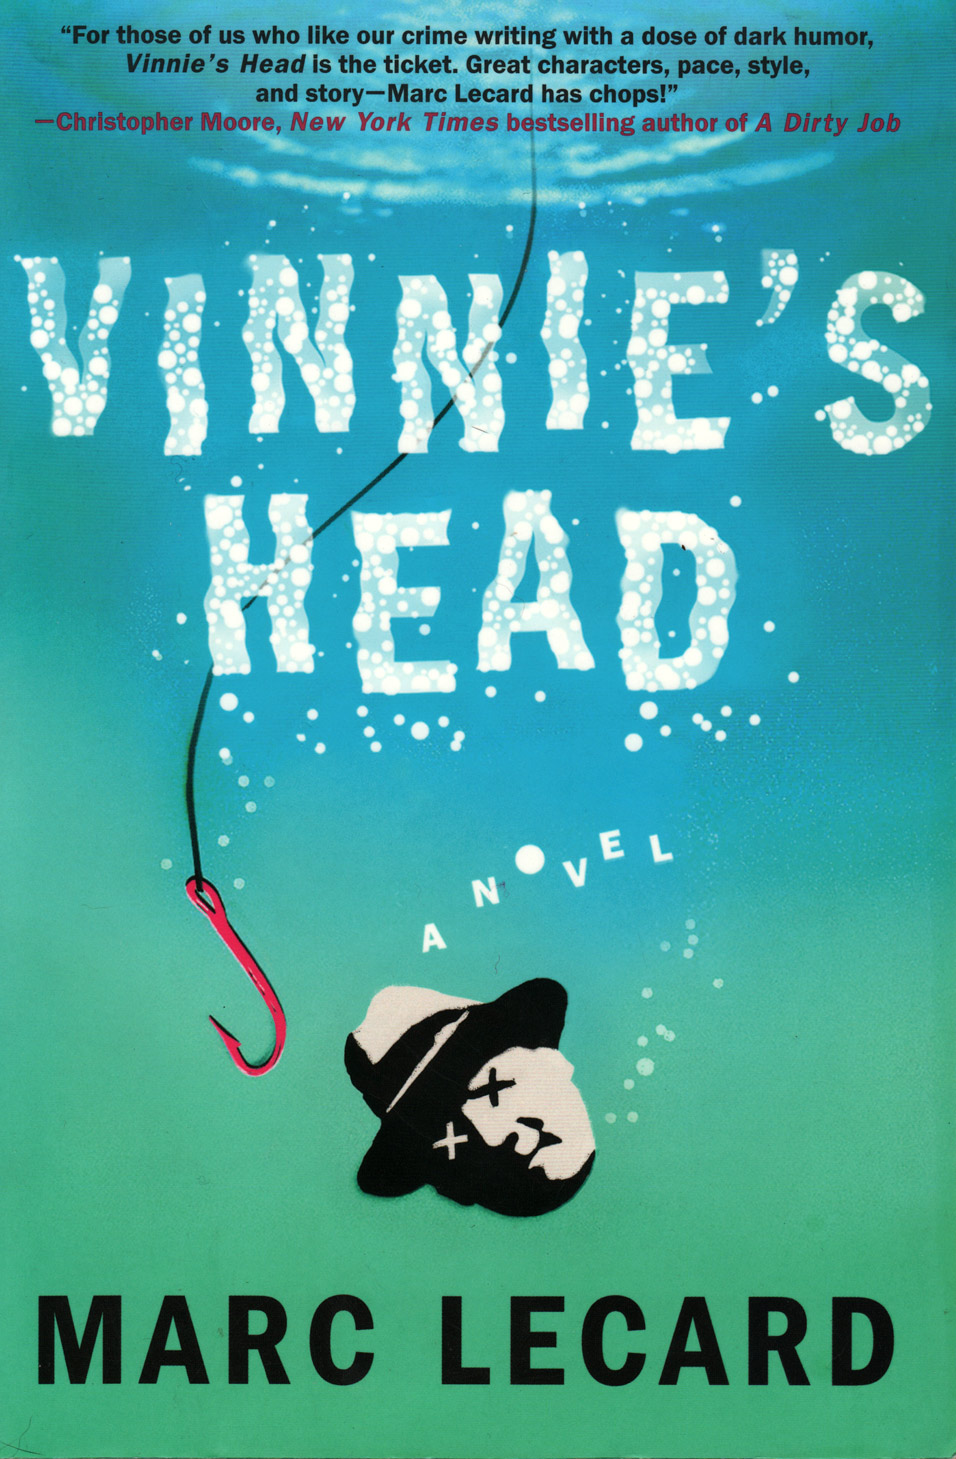 vinniehead_bookcover_front_web